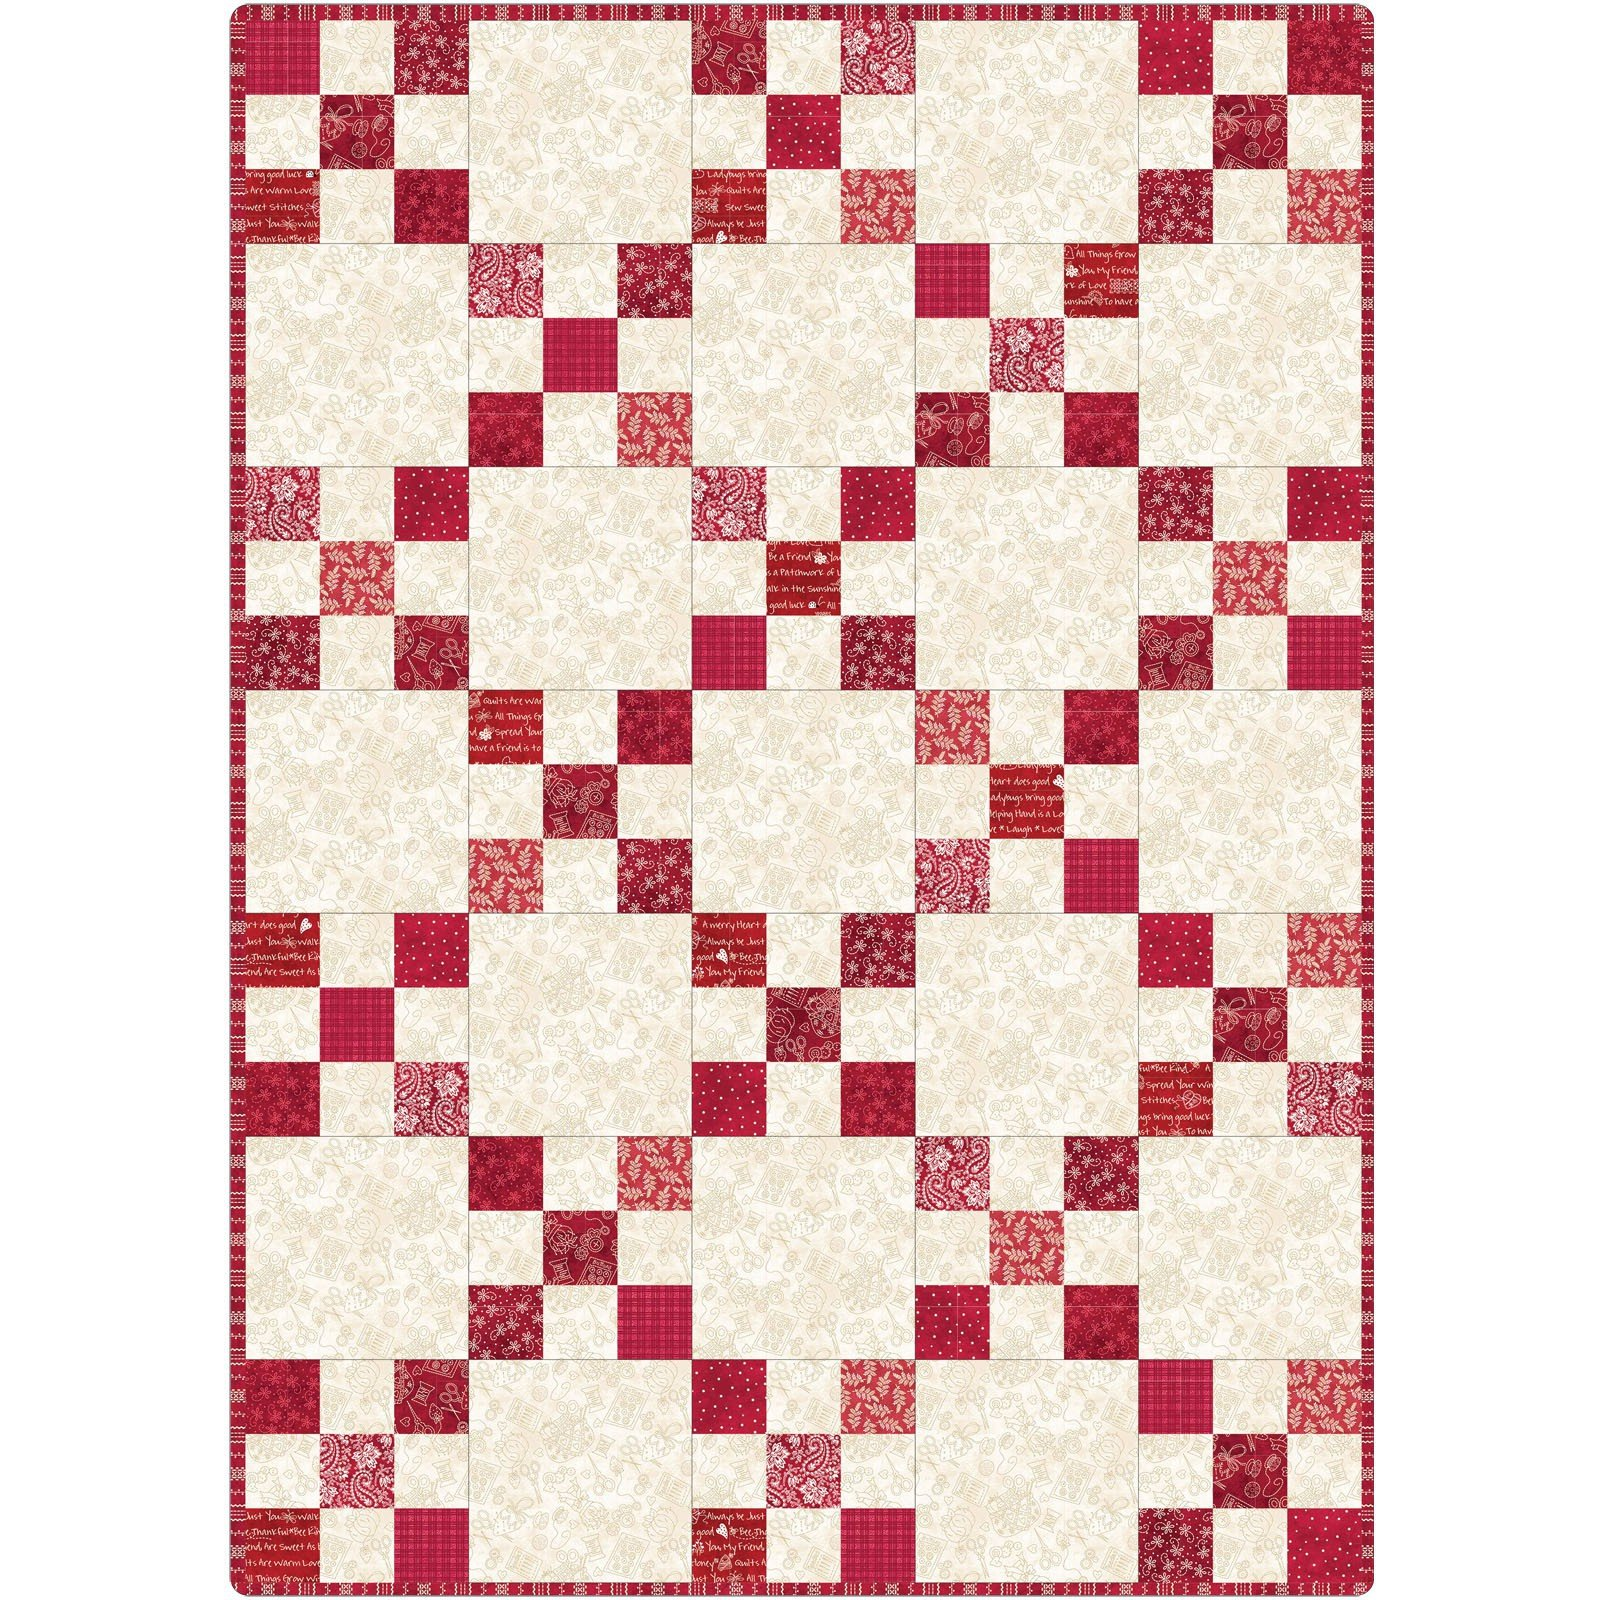 Maywood - The Little Things - Irish Chain Quilt KIT - PreCut Patchwork Pieces - POD-MAS06-TLT